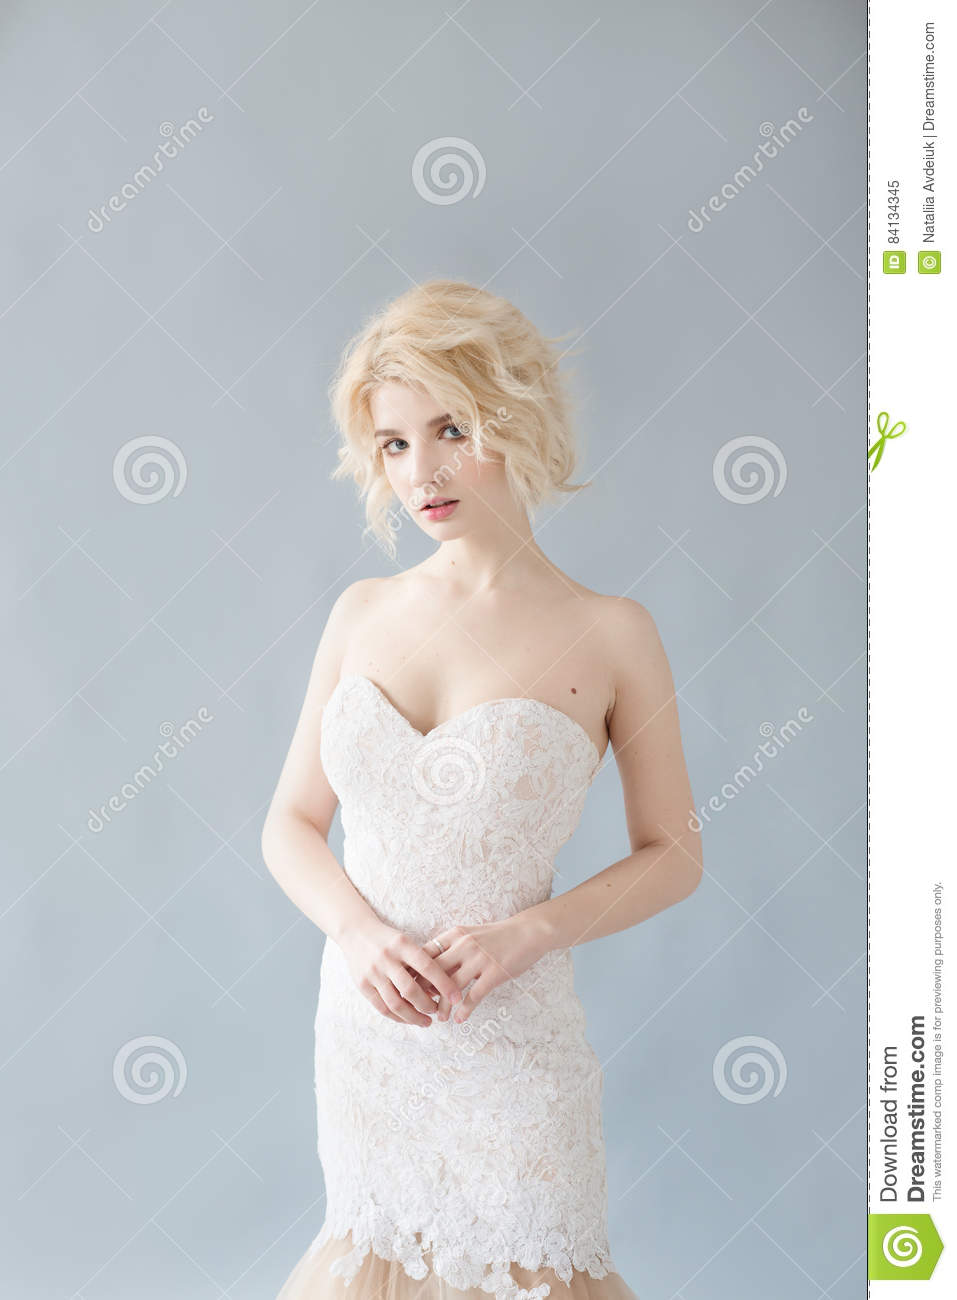 woman with white hair in a wedding dress. young blonde woman with